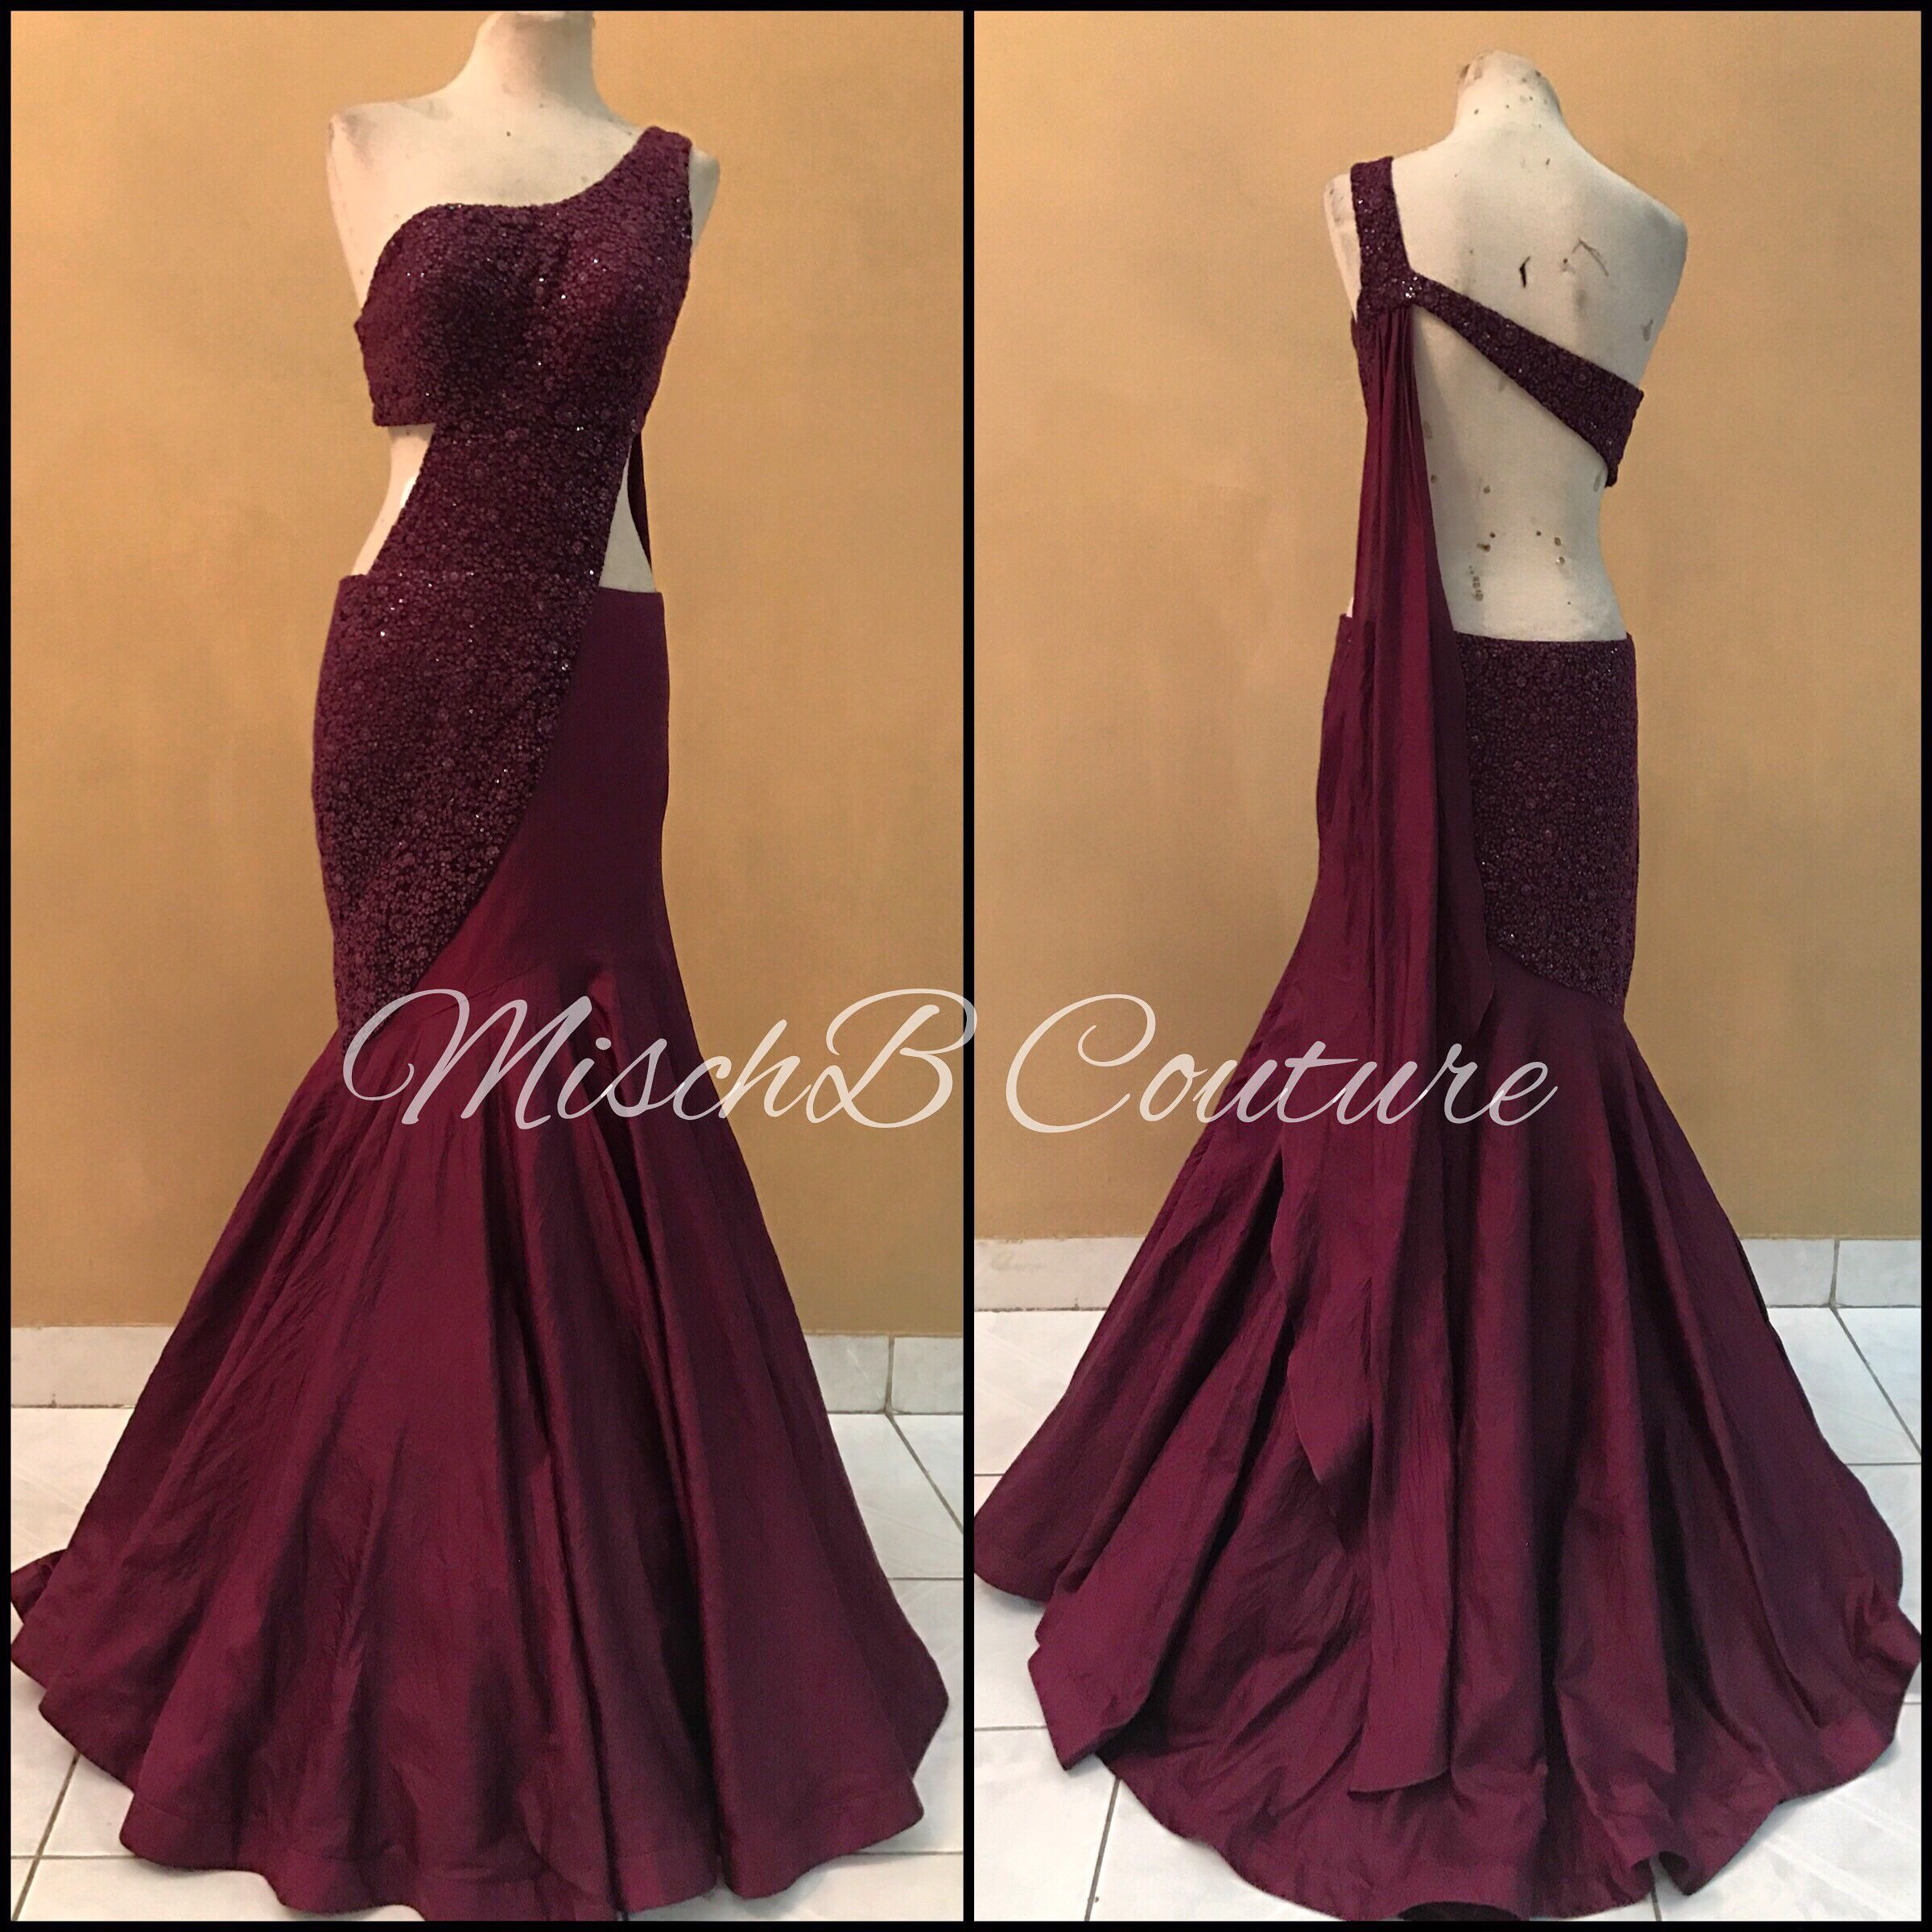 The Minimalist, saree gown by MischB Couture   For the love of ...